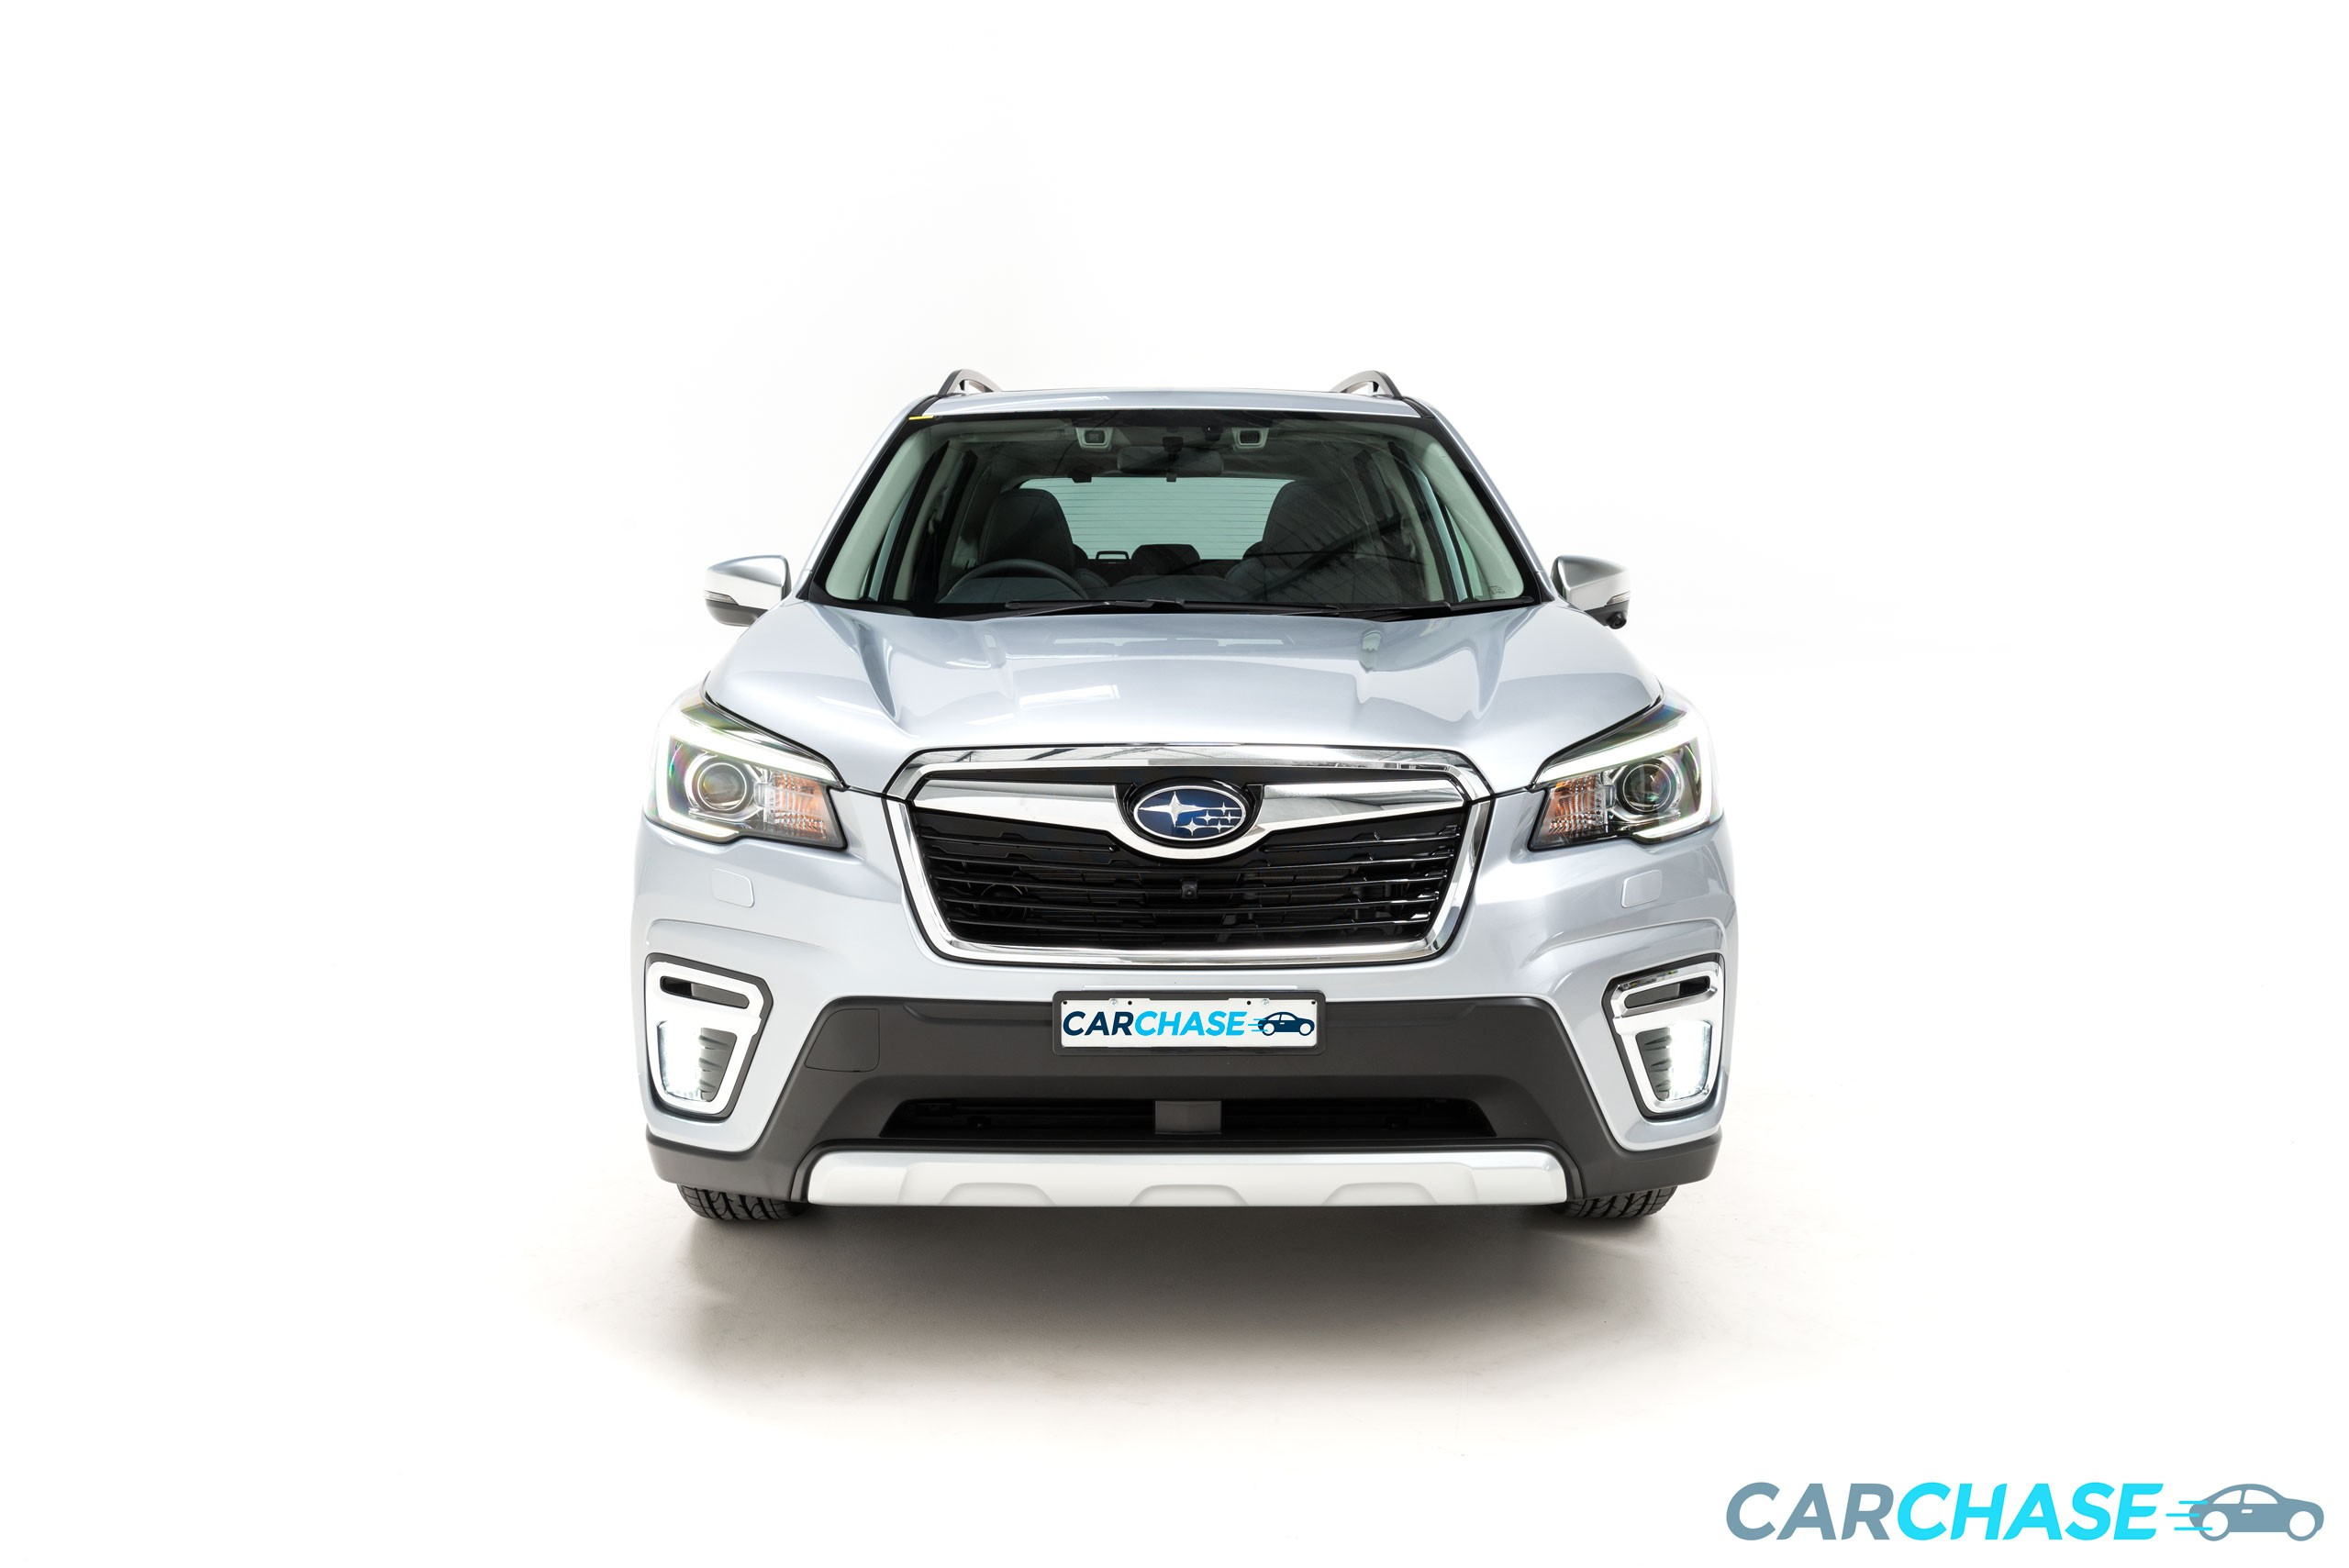 Image of front profile of 2018 Subaru Forester 2.5i-S